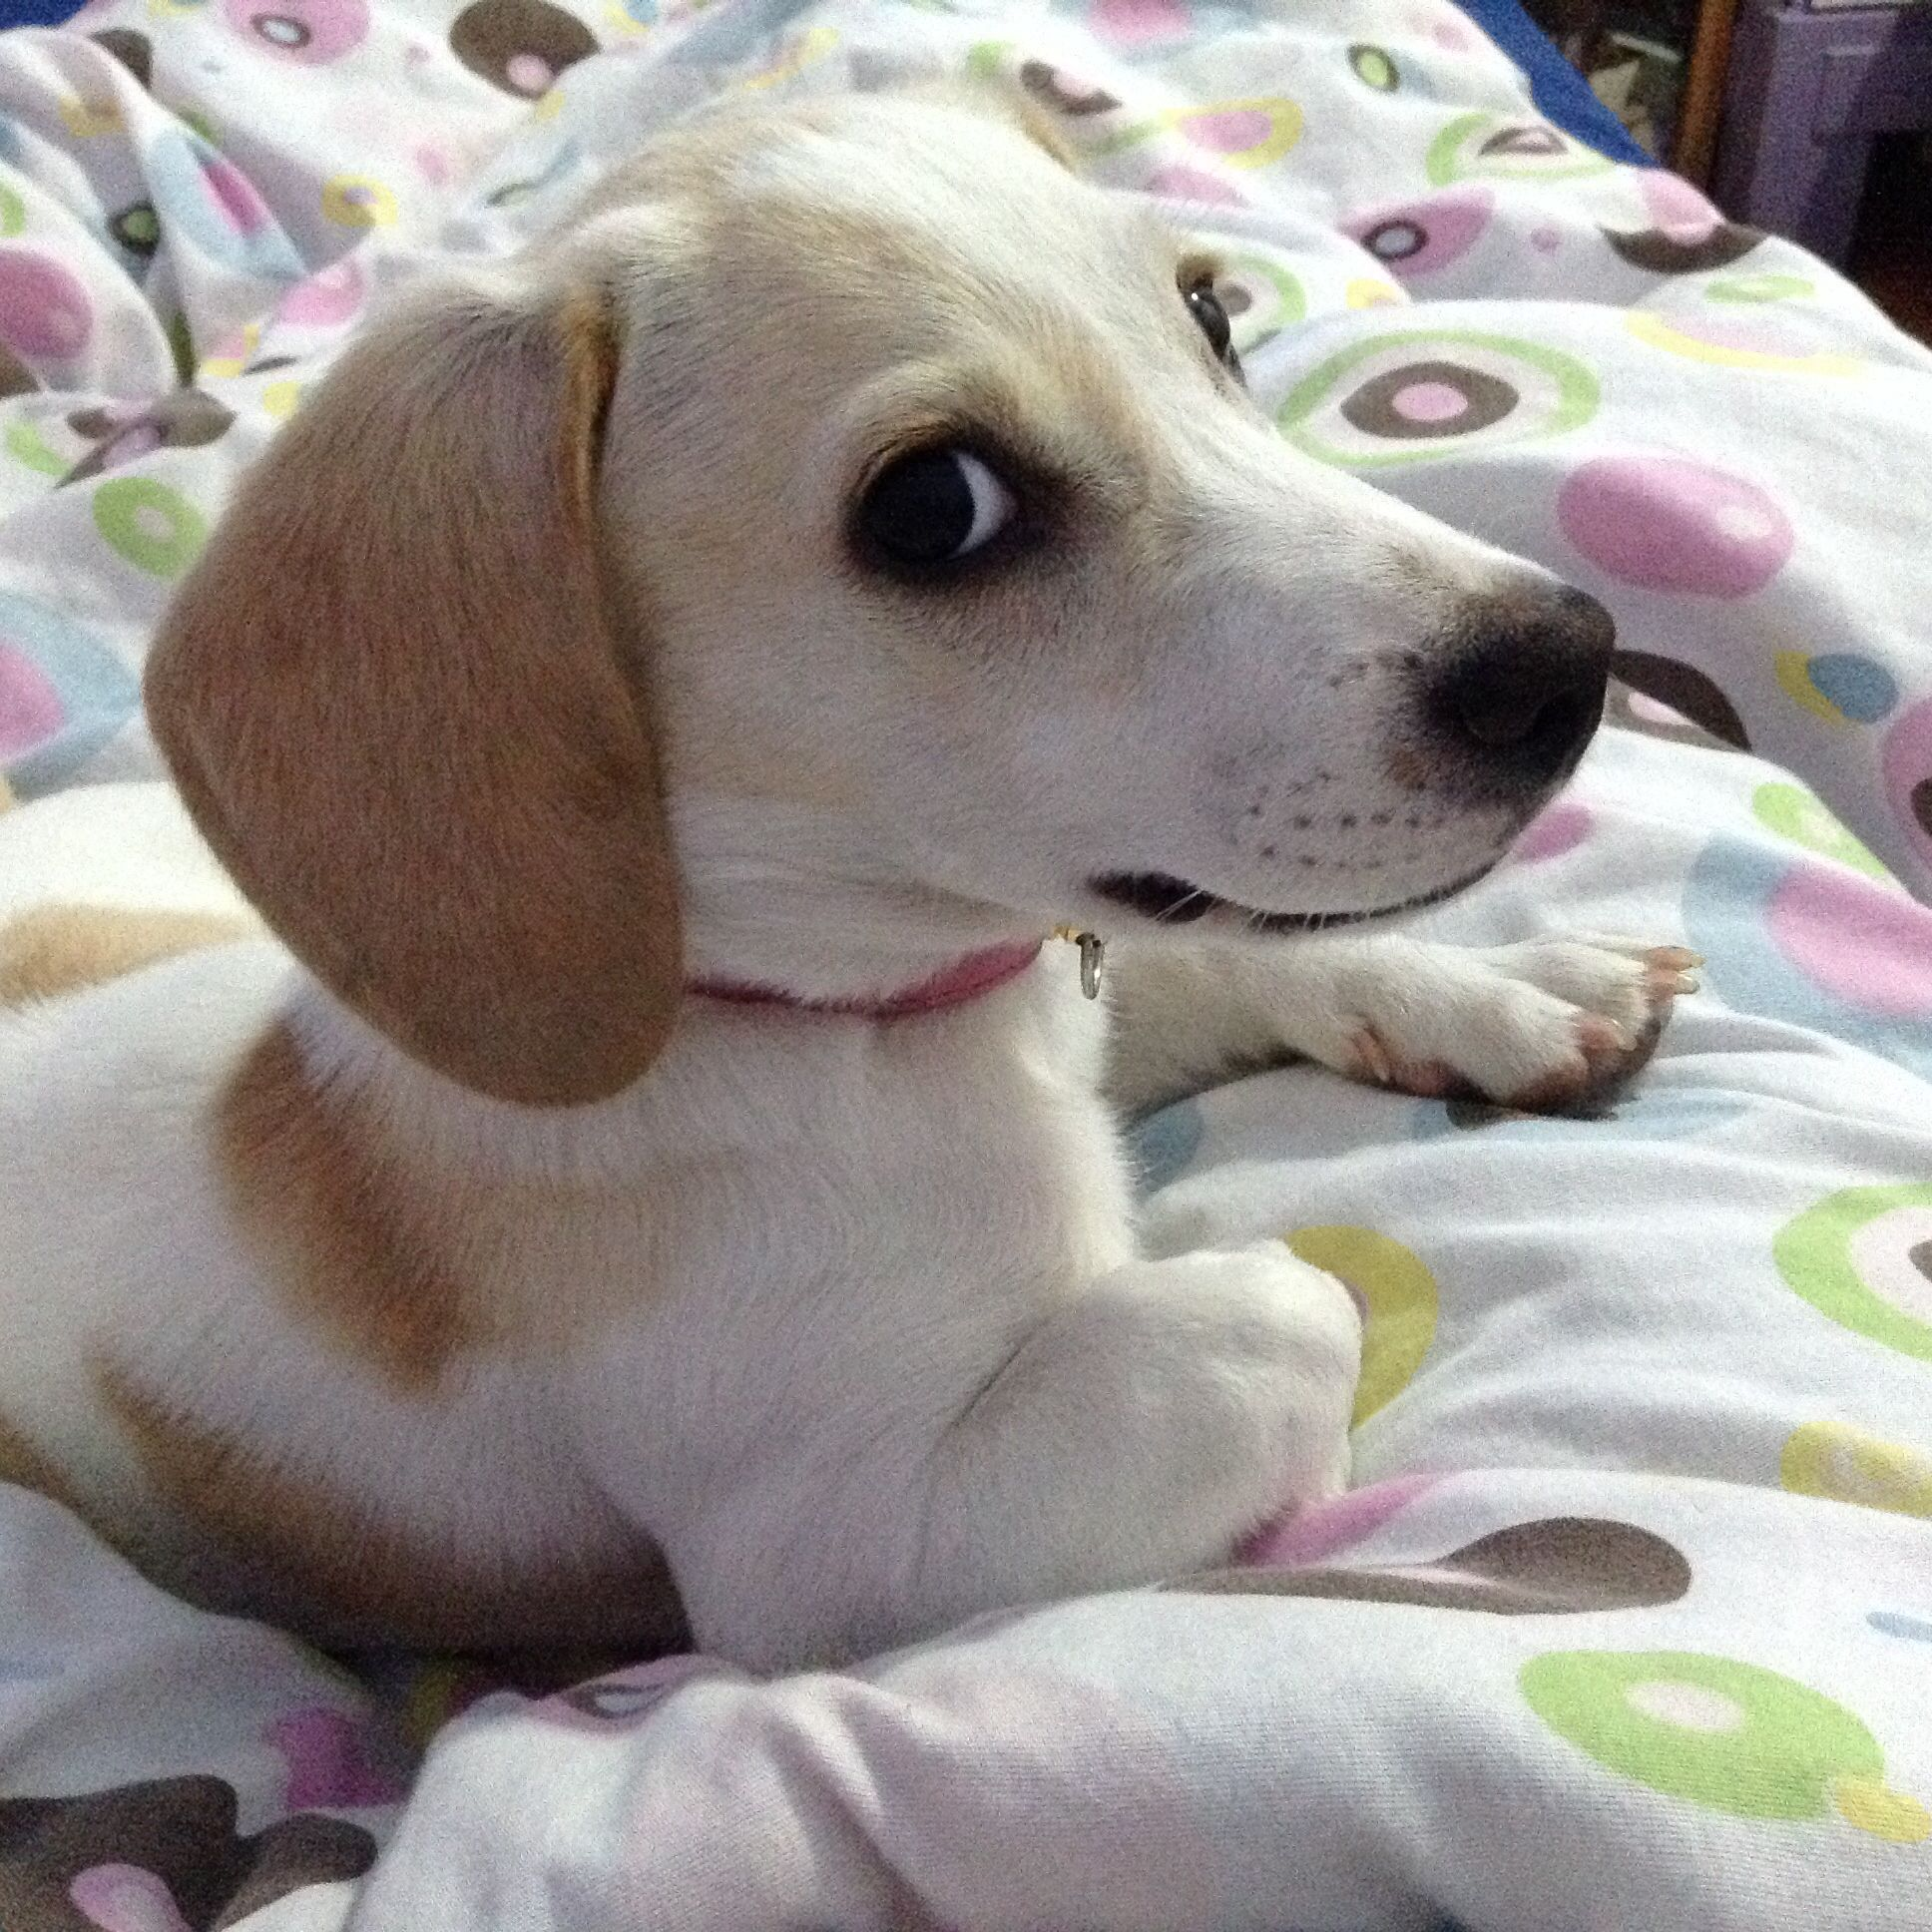 Must see Snoopy Beagle Beagle Adorable Dog - 18121dc047f0ddfb36b3c0ff81257cc7  Trends_98369  .jpg